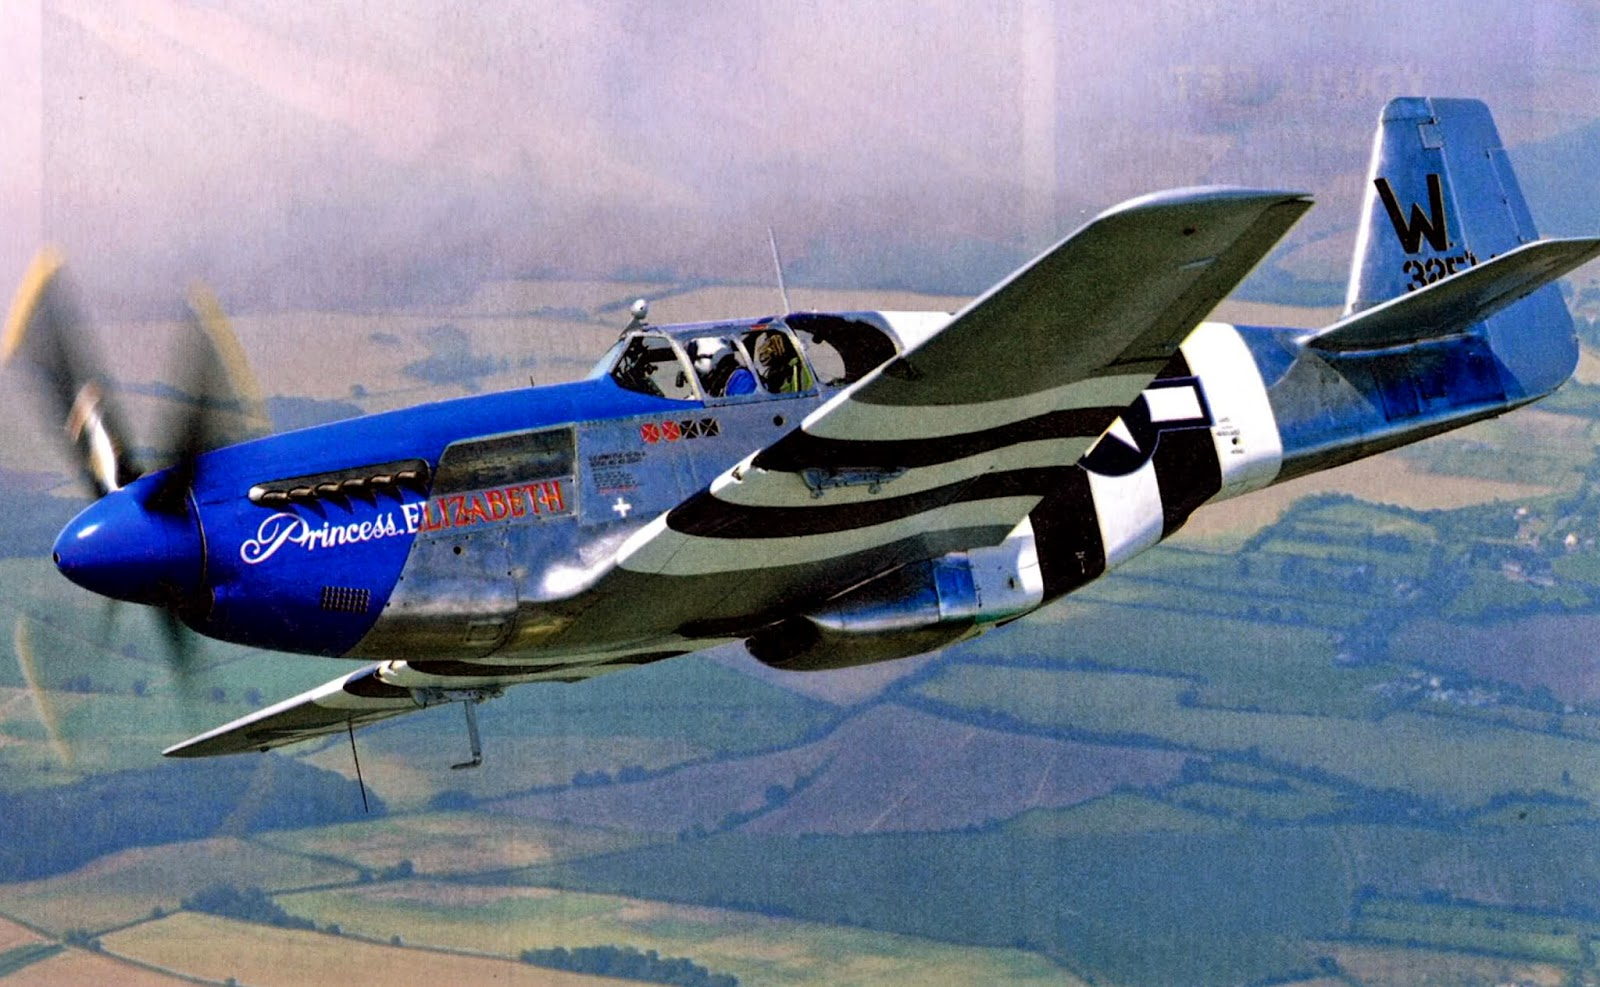 P 51 Mustang P 51 Mustang The Birth Of A Us Legend